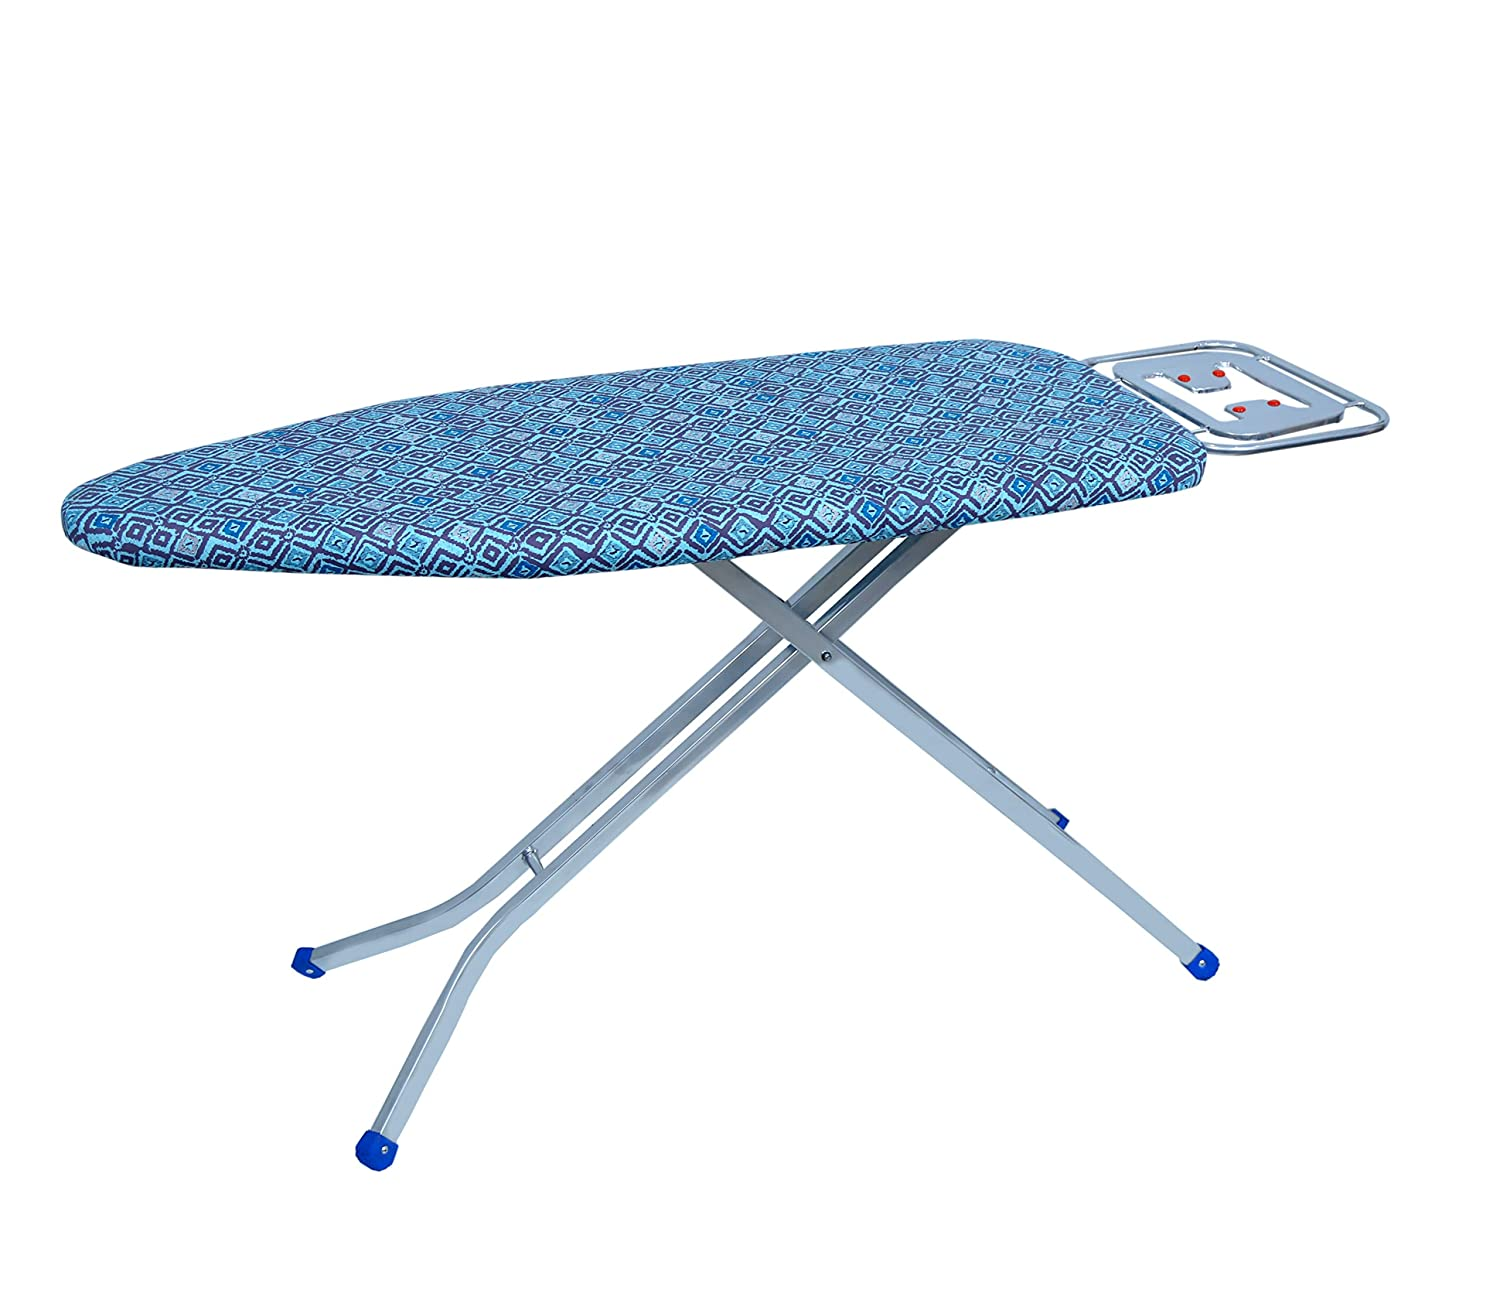 Meded Premium Foldable Ironing Board